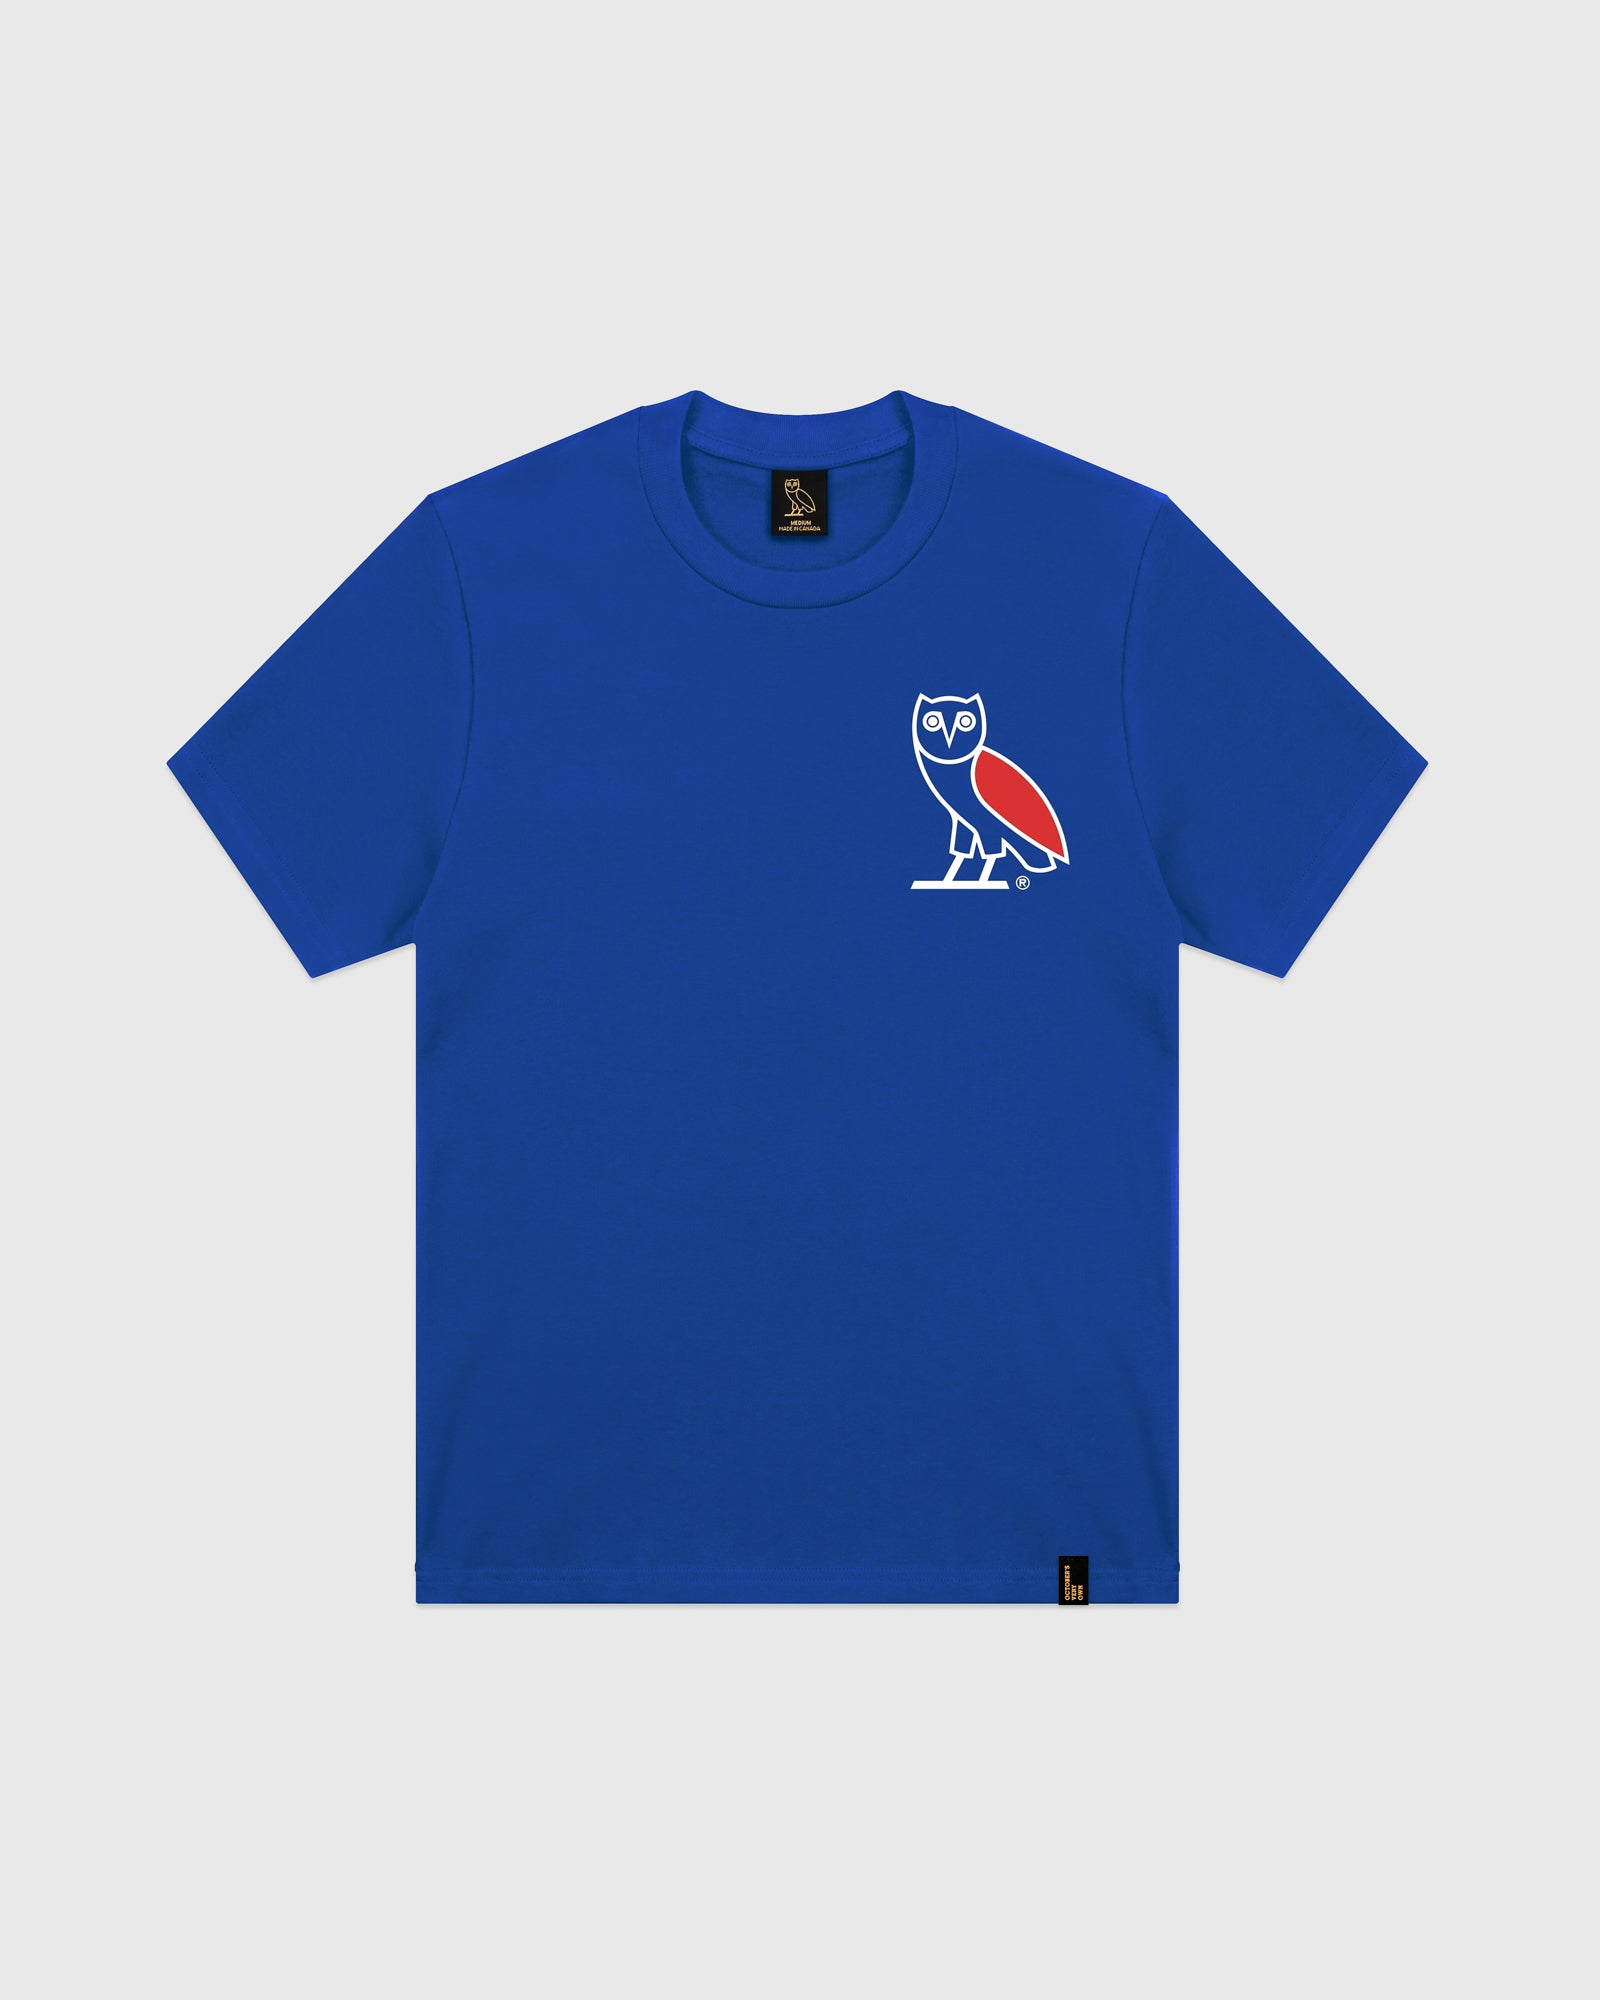 OVO FRANCHISE T-SHIRT - ROYAL BLUE